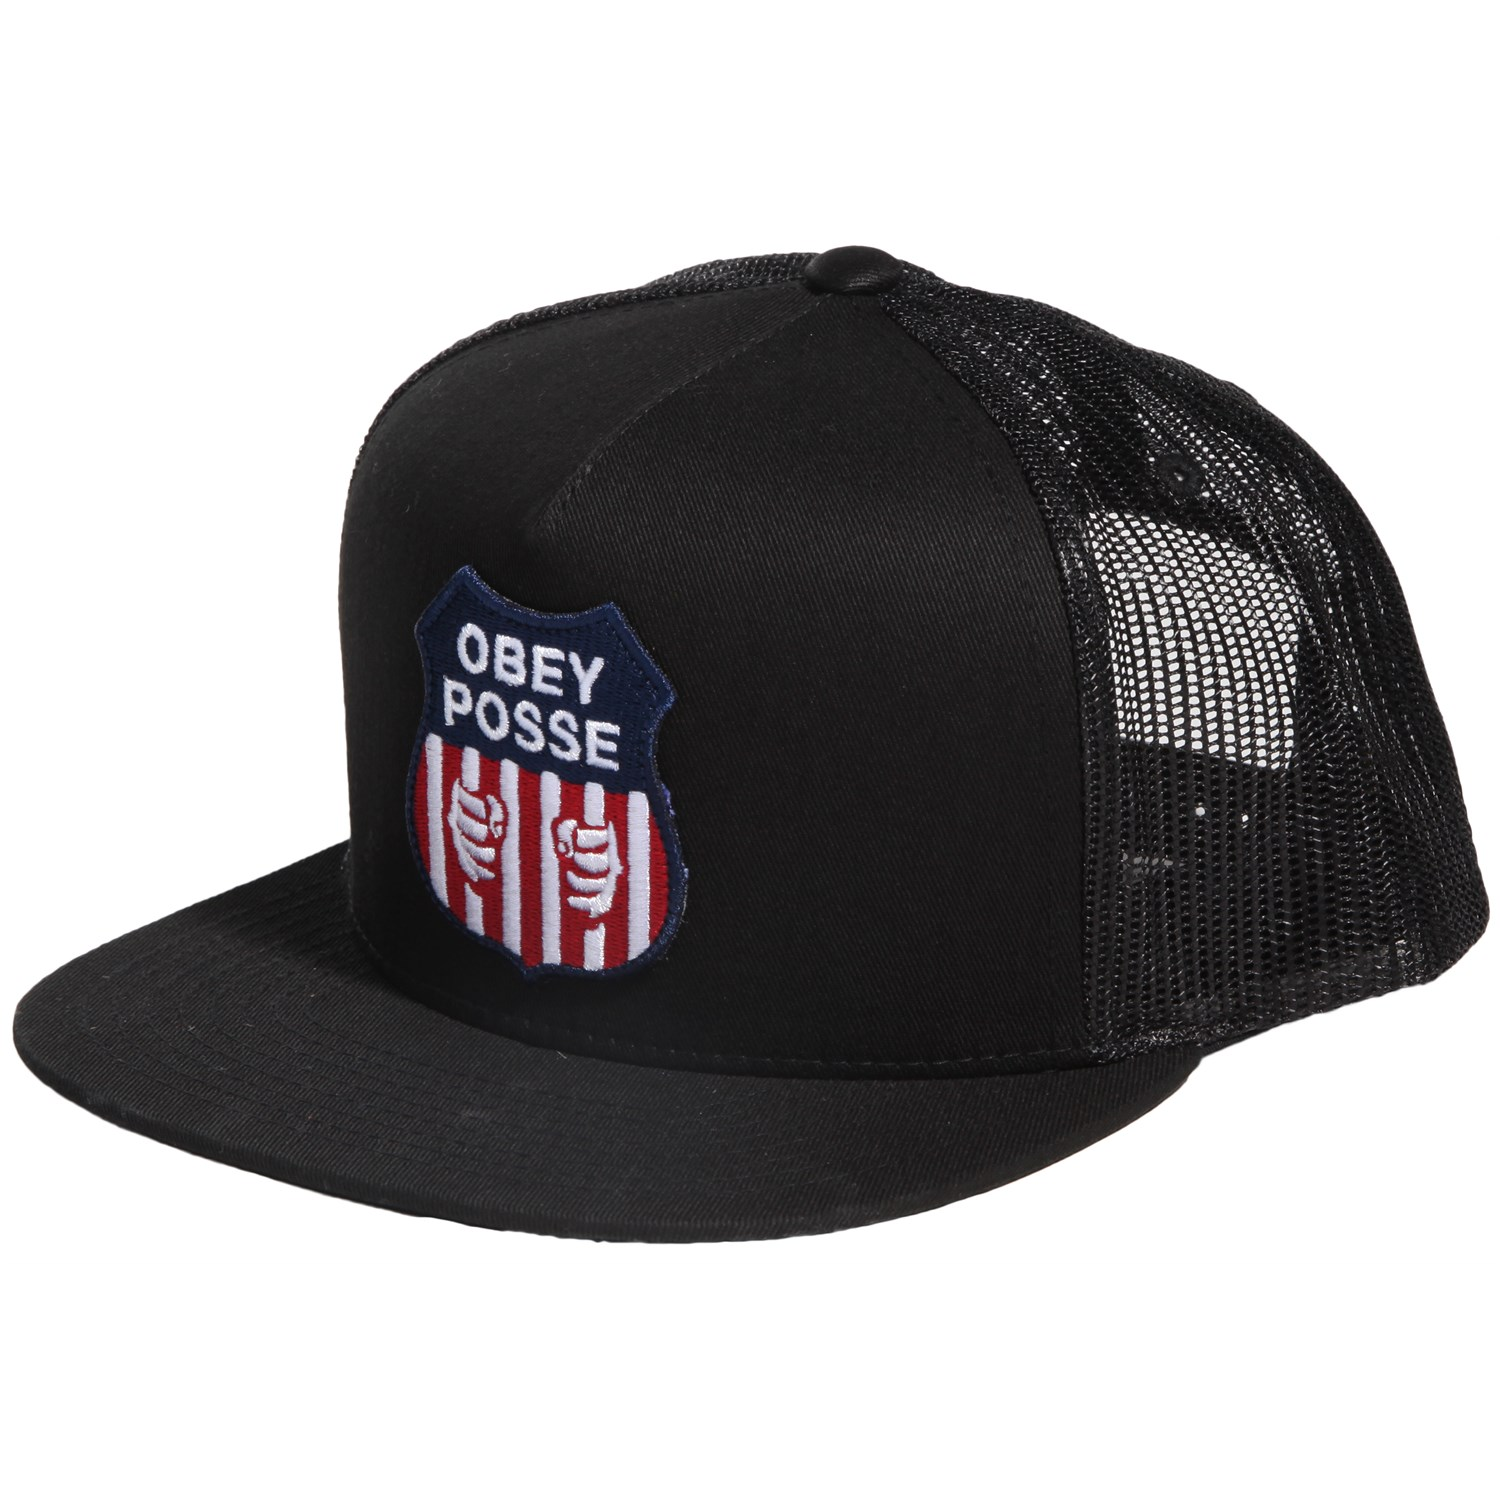 obey clothing prison union hat evo outlet